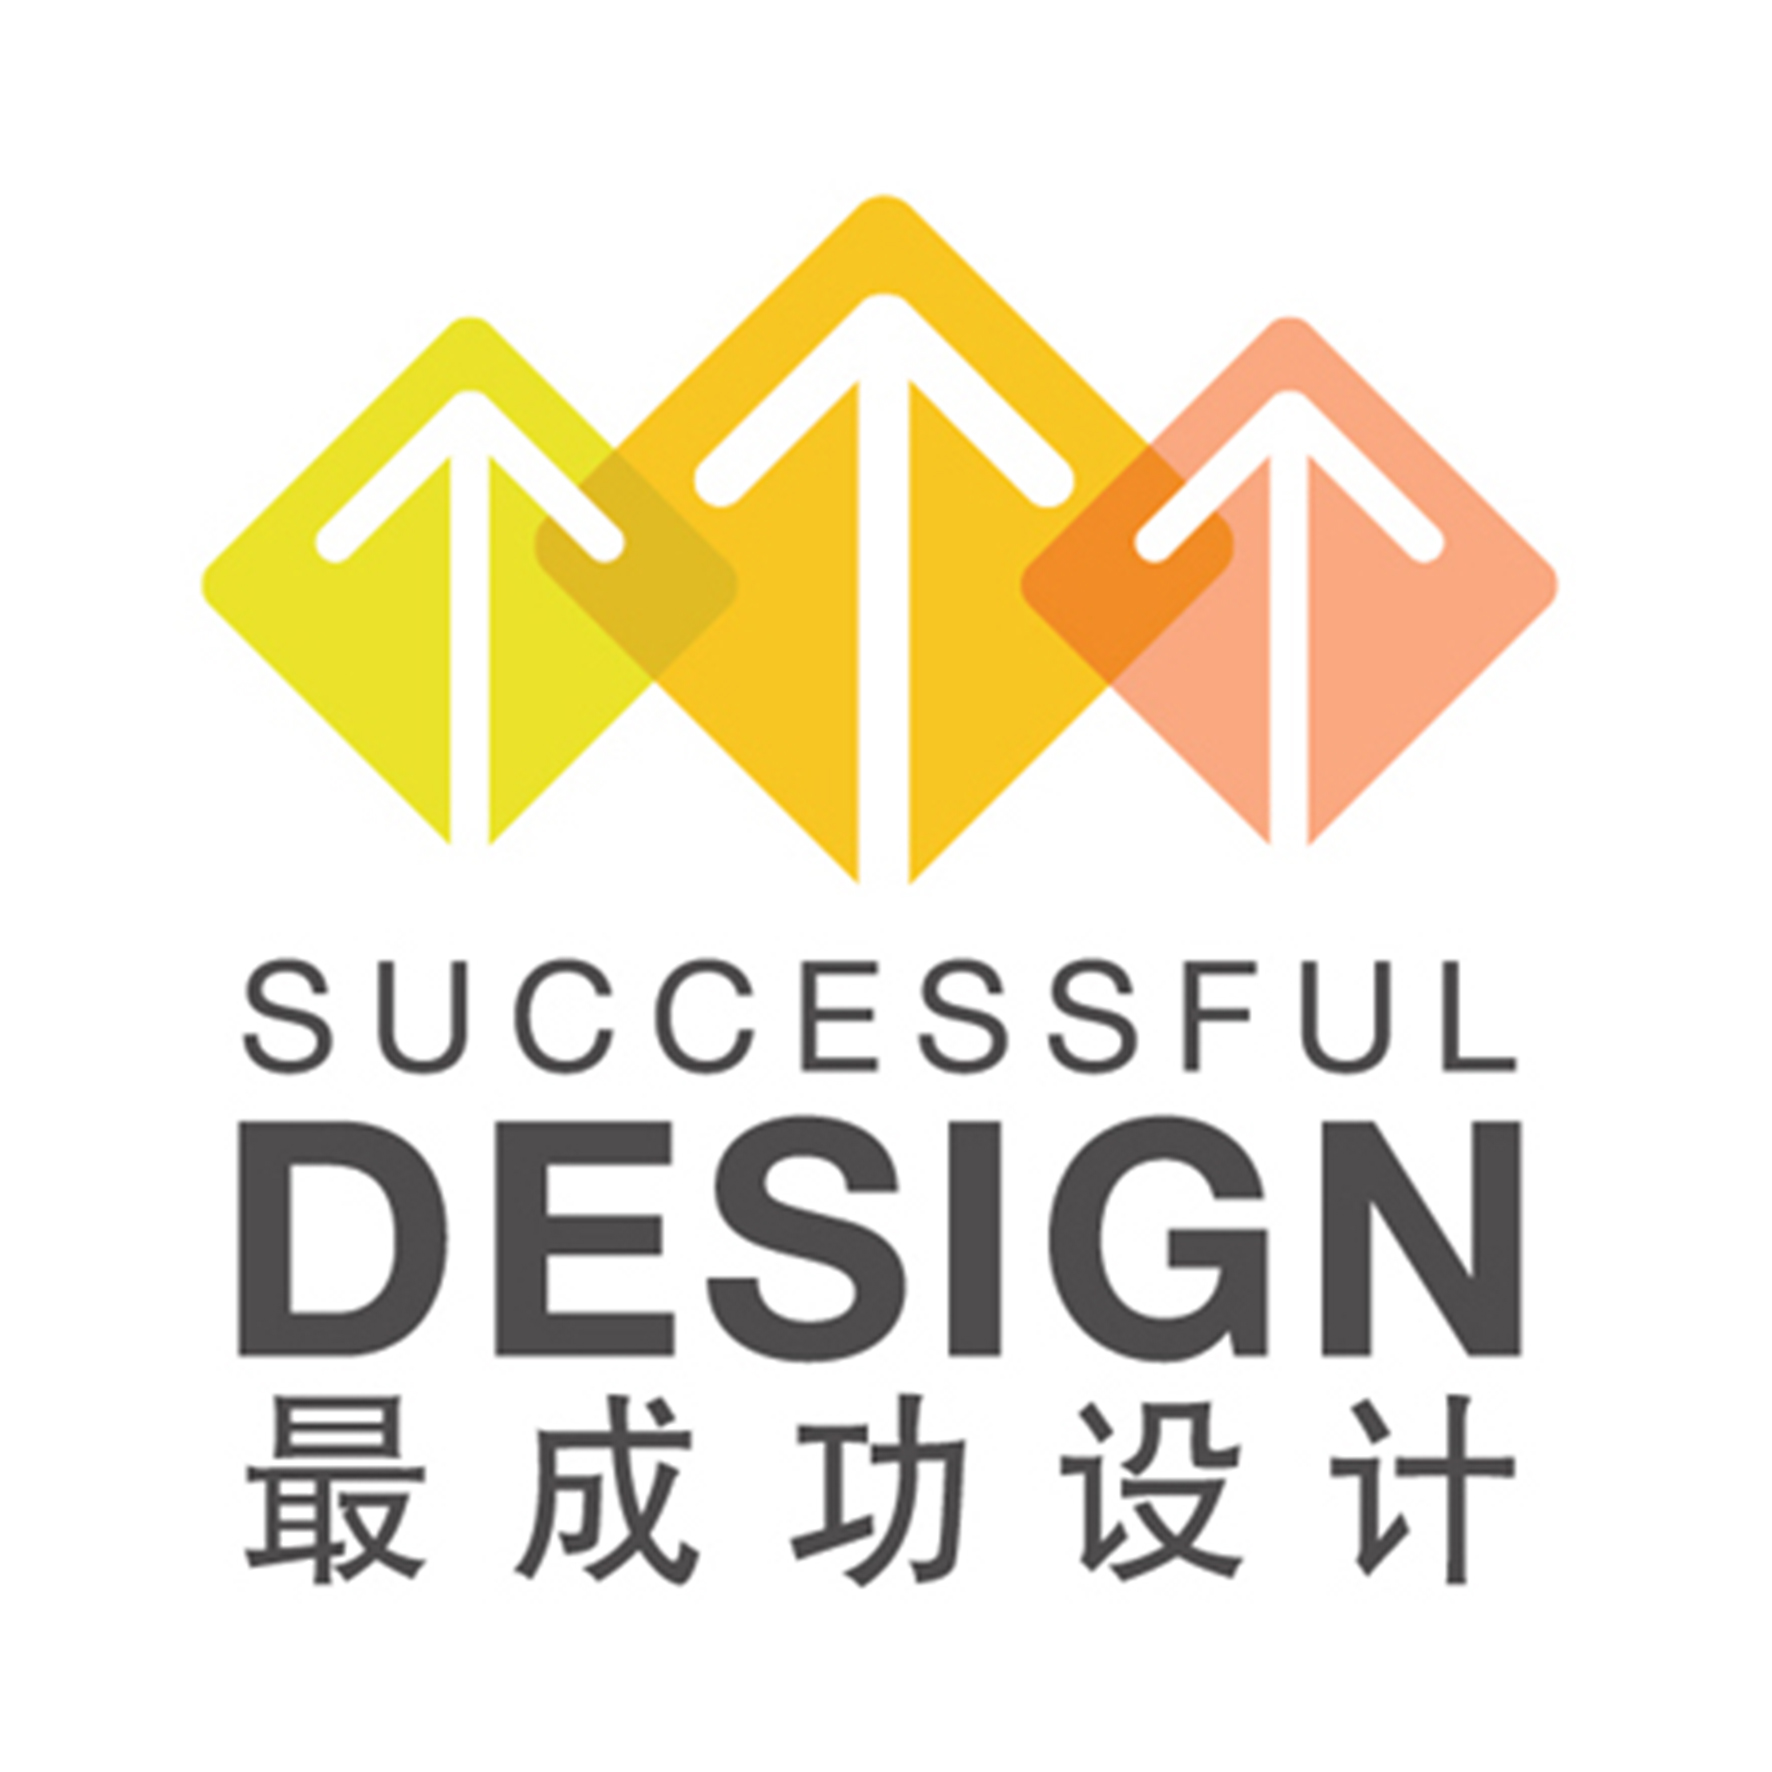 Successful Design Award - SPACE, China's Successful Design Award 2015